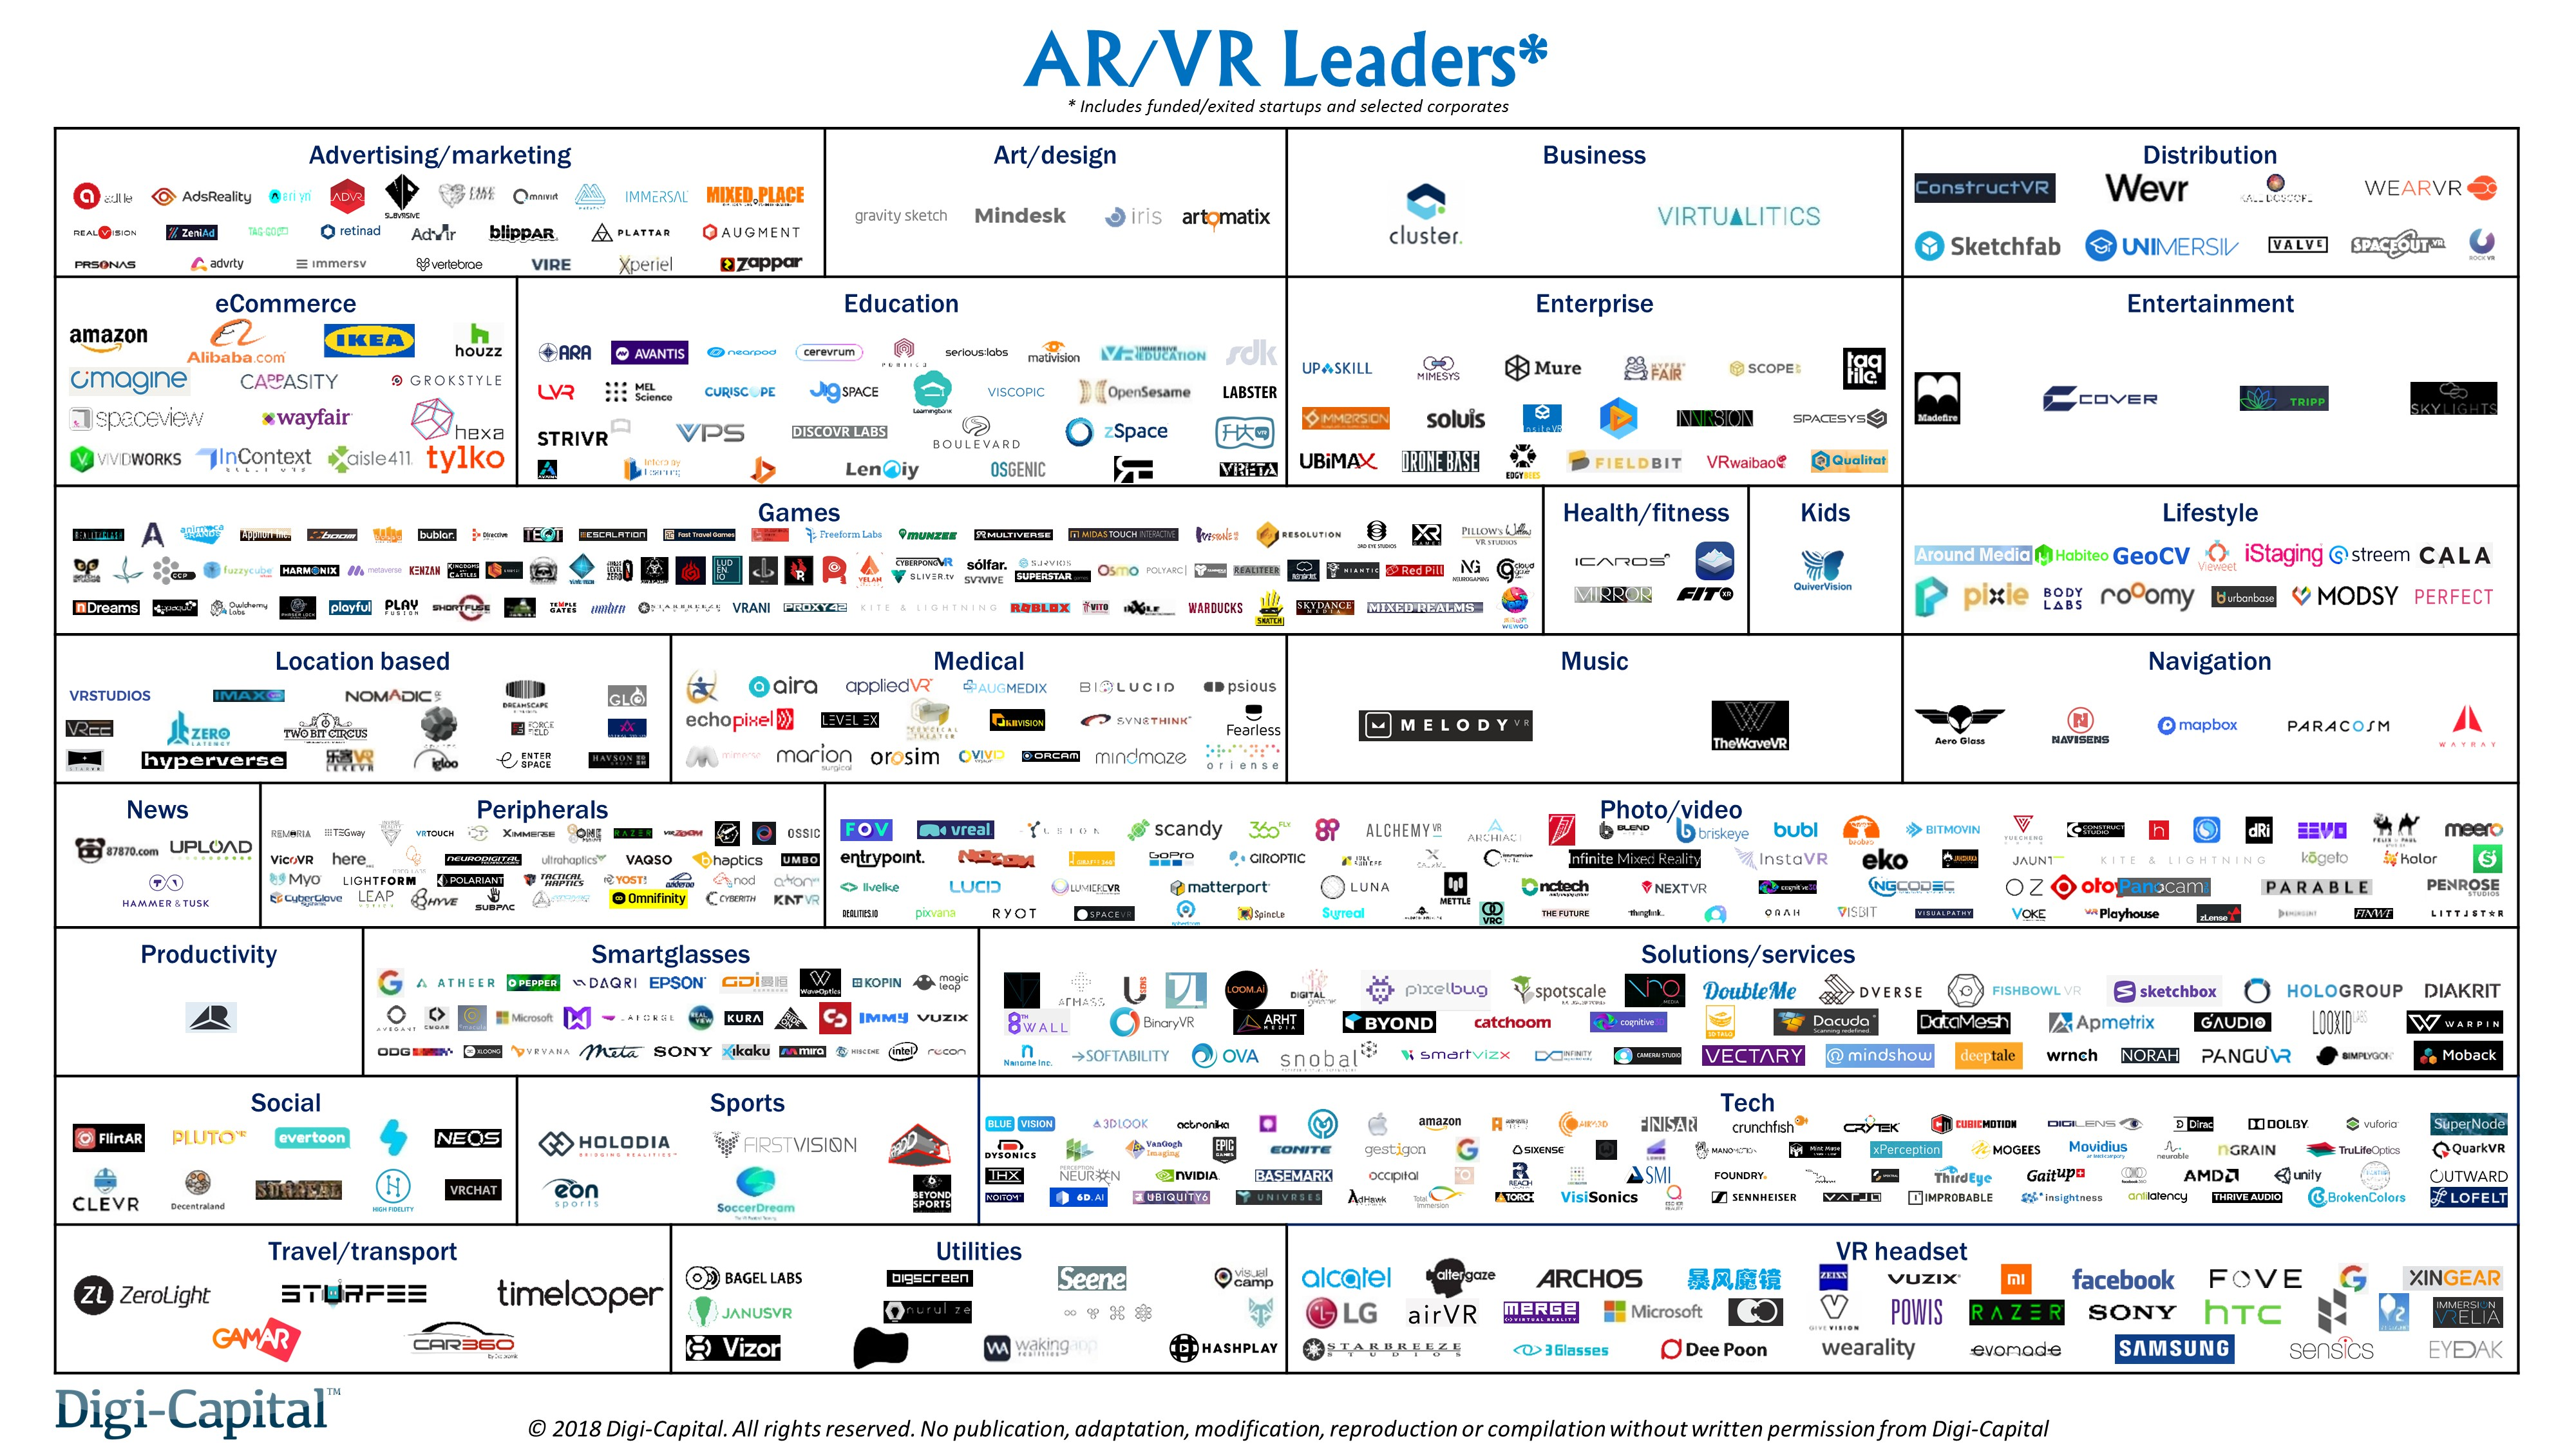 AR and VR Leaders